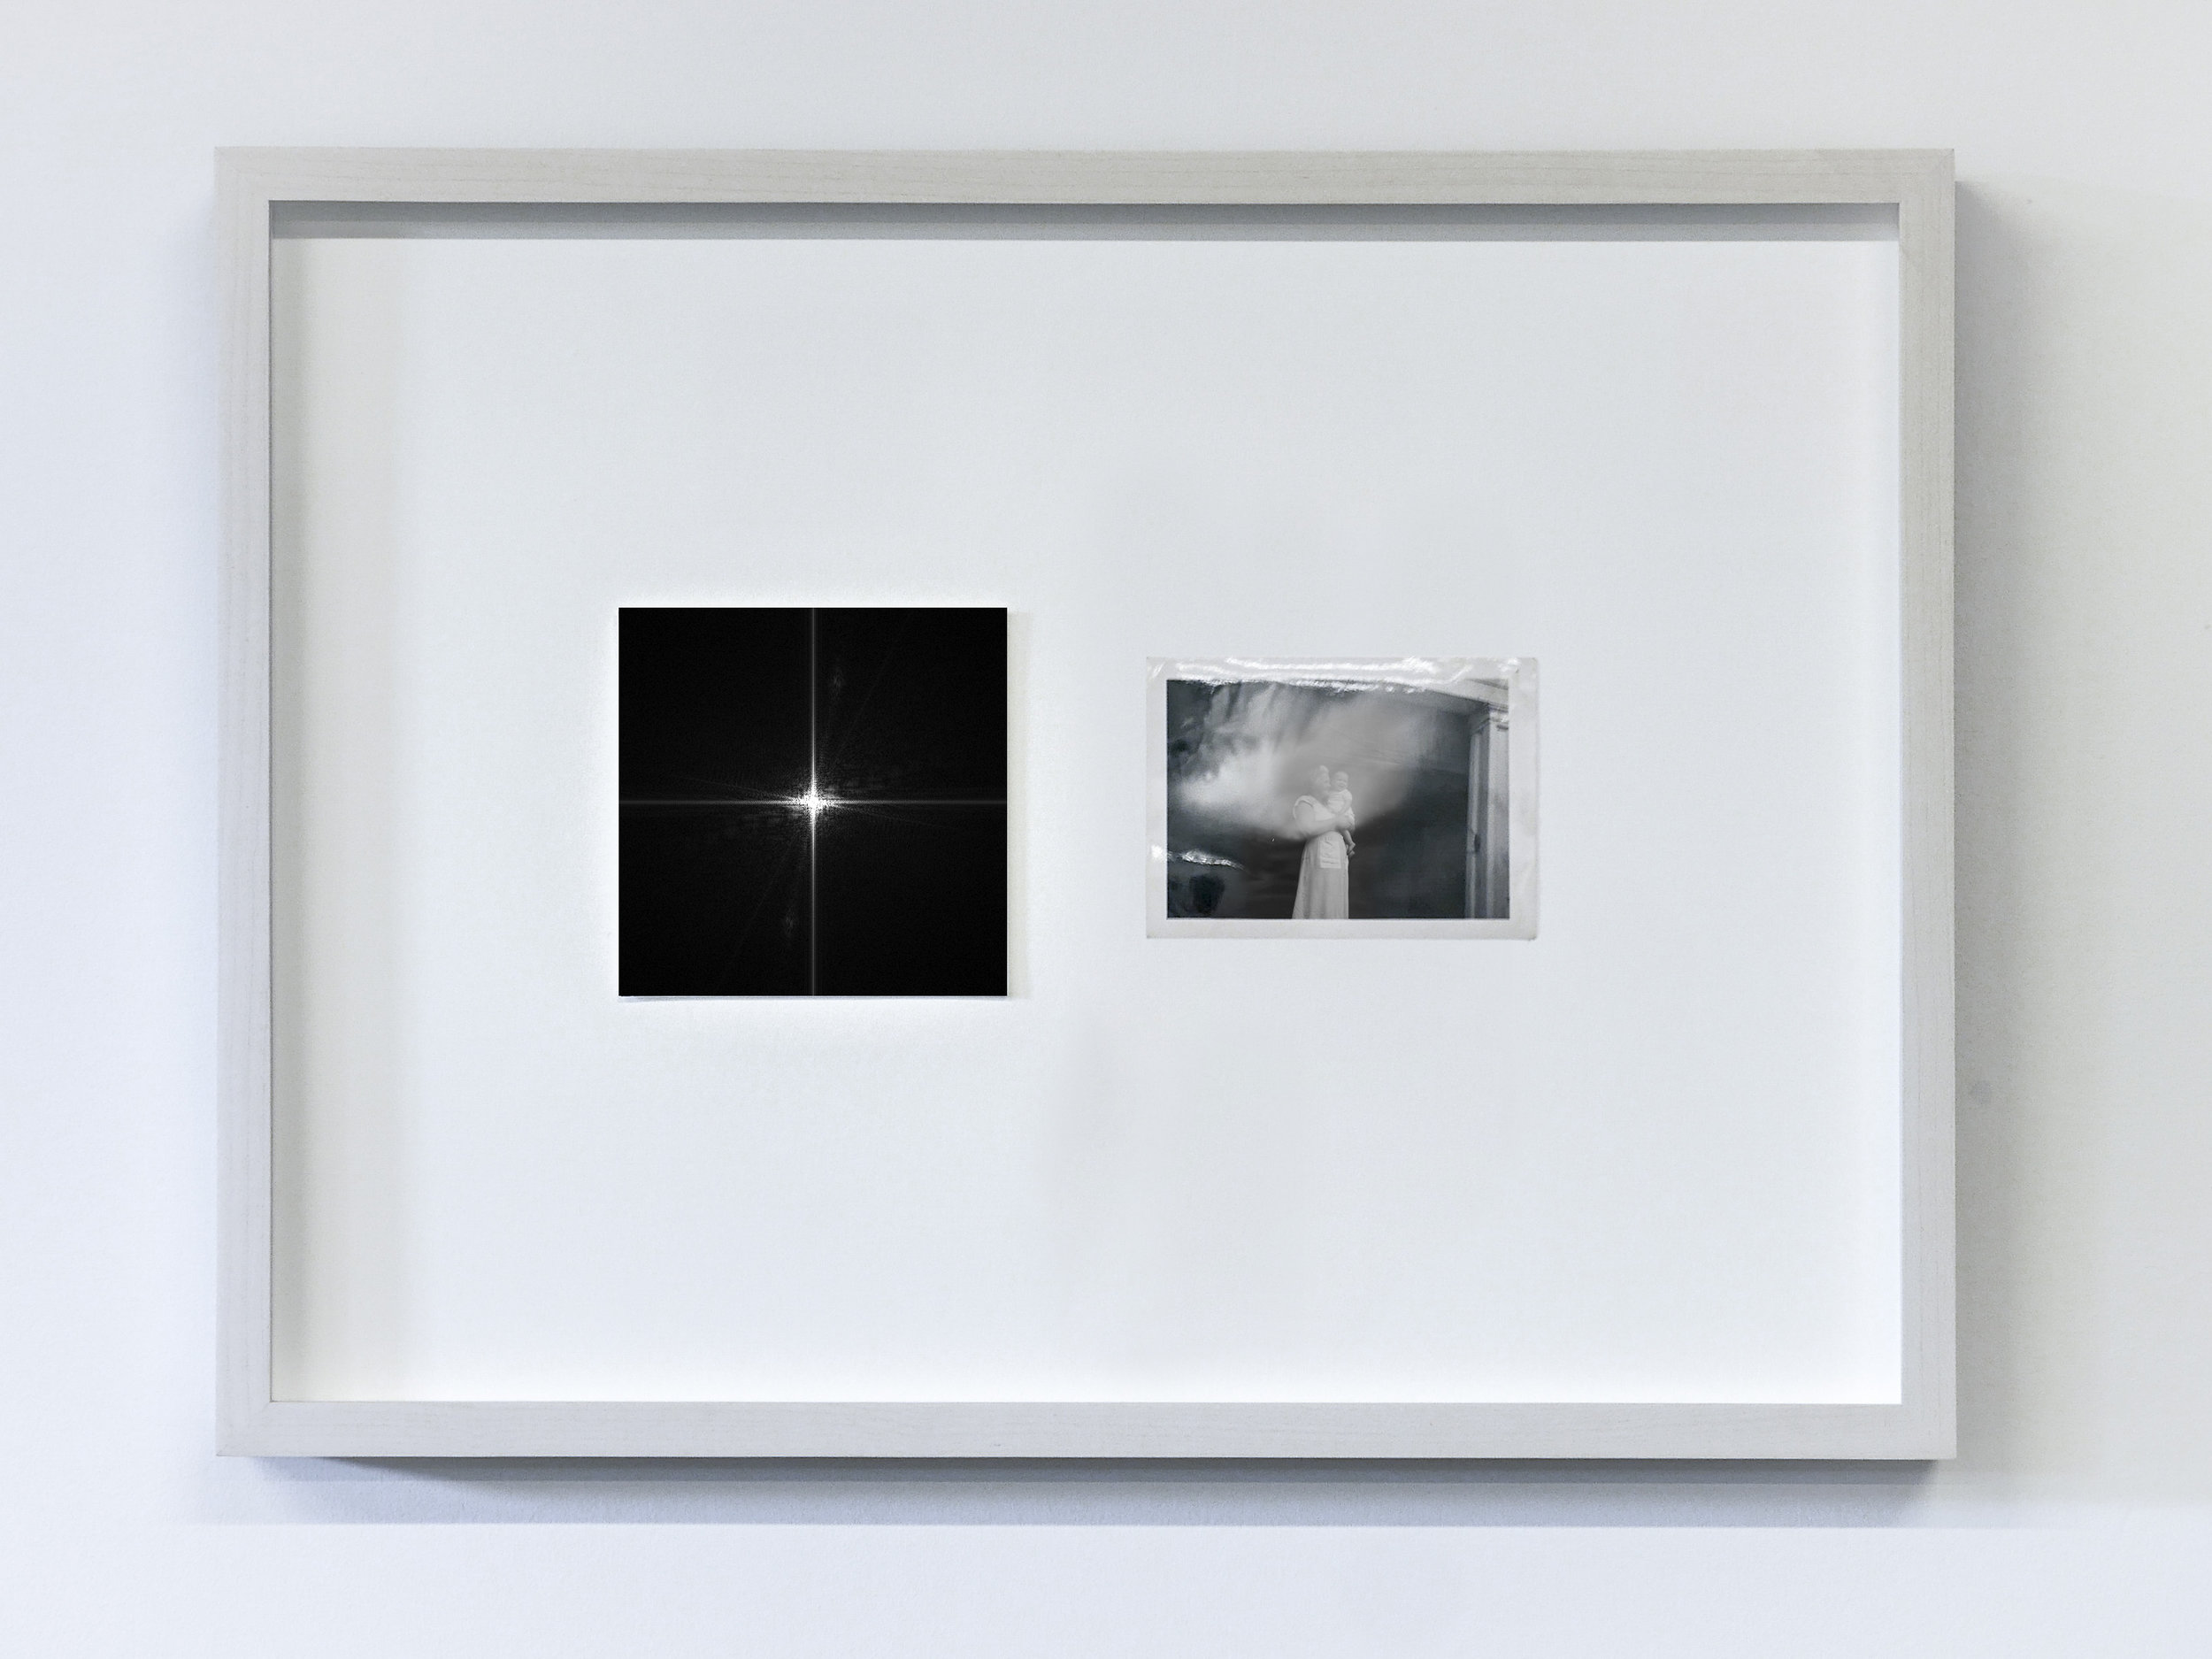 The Essence of a Moment/Fourier 6 , 2017 C-Print and vintage photo in wooden frame 11.8 x 15.75 in (30 x 40 cm) Edition of 1, unique work